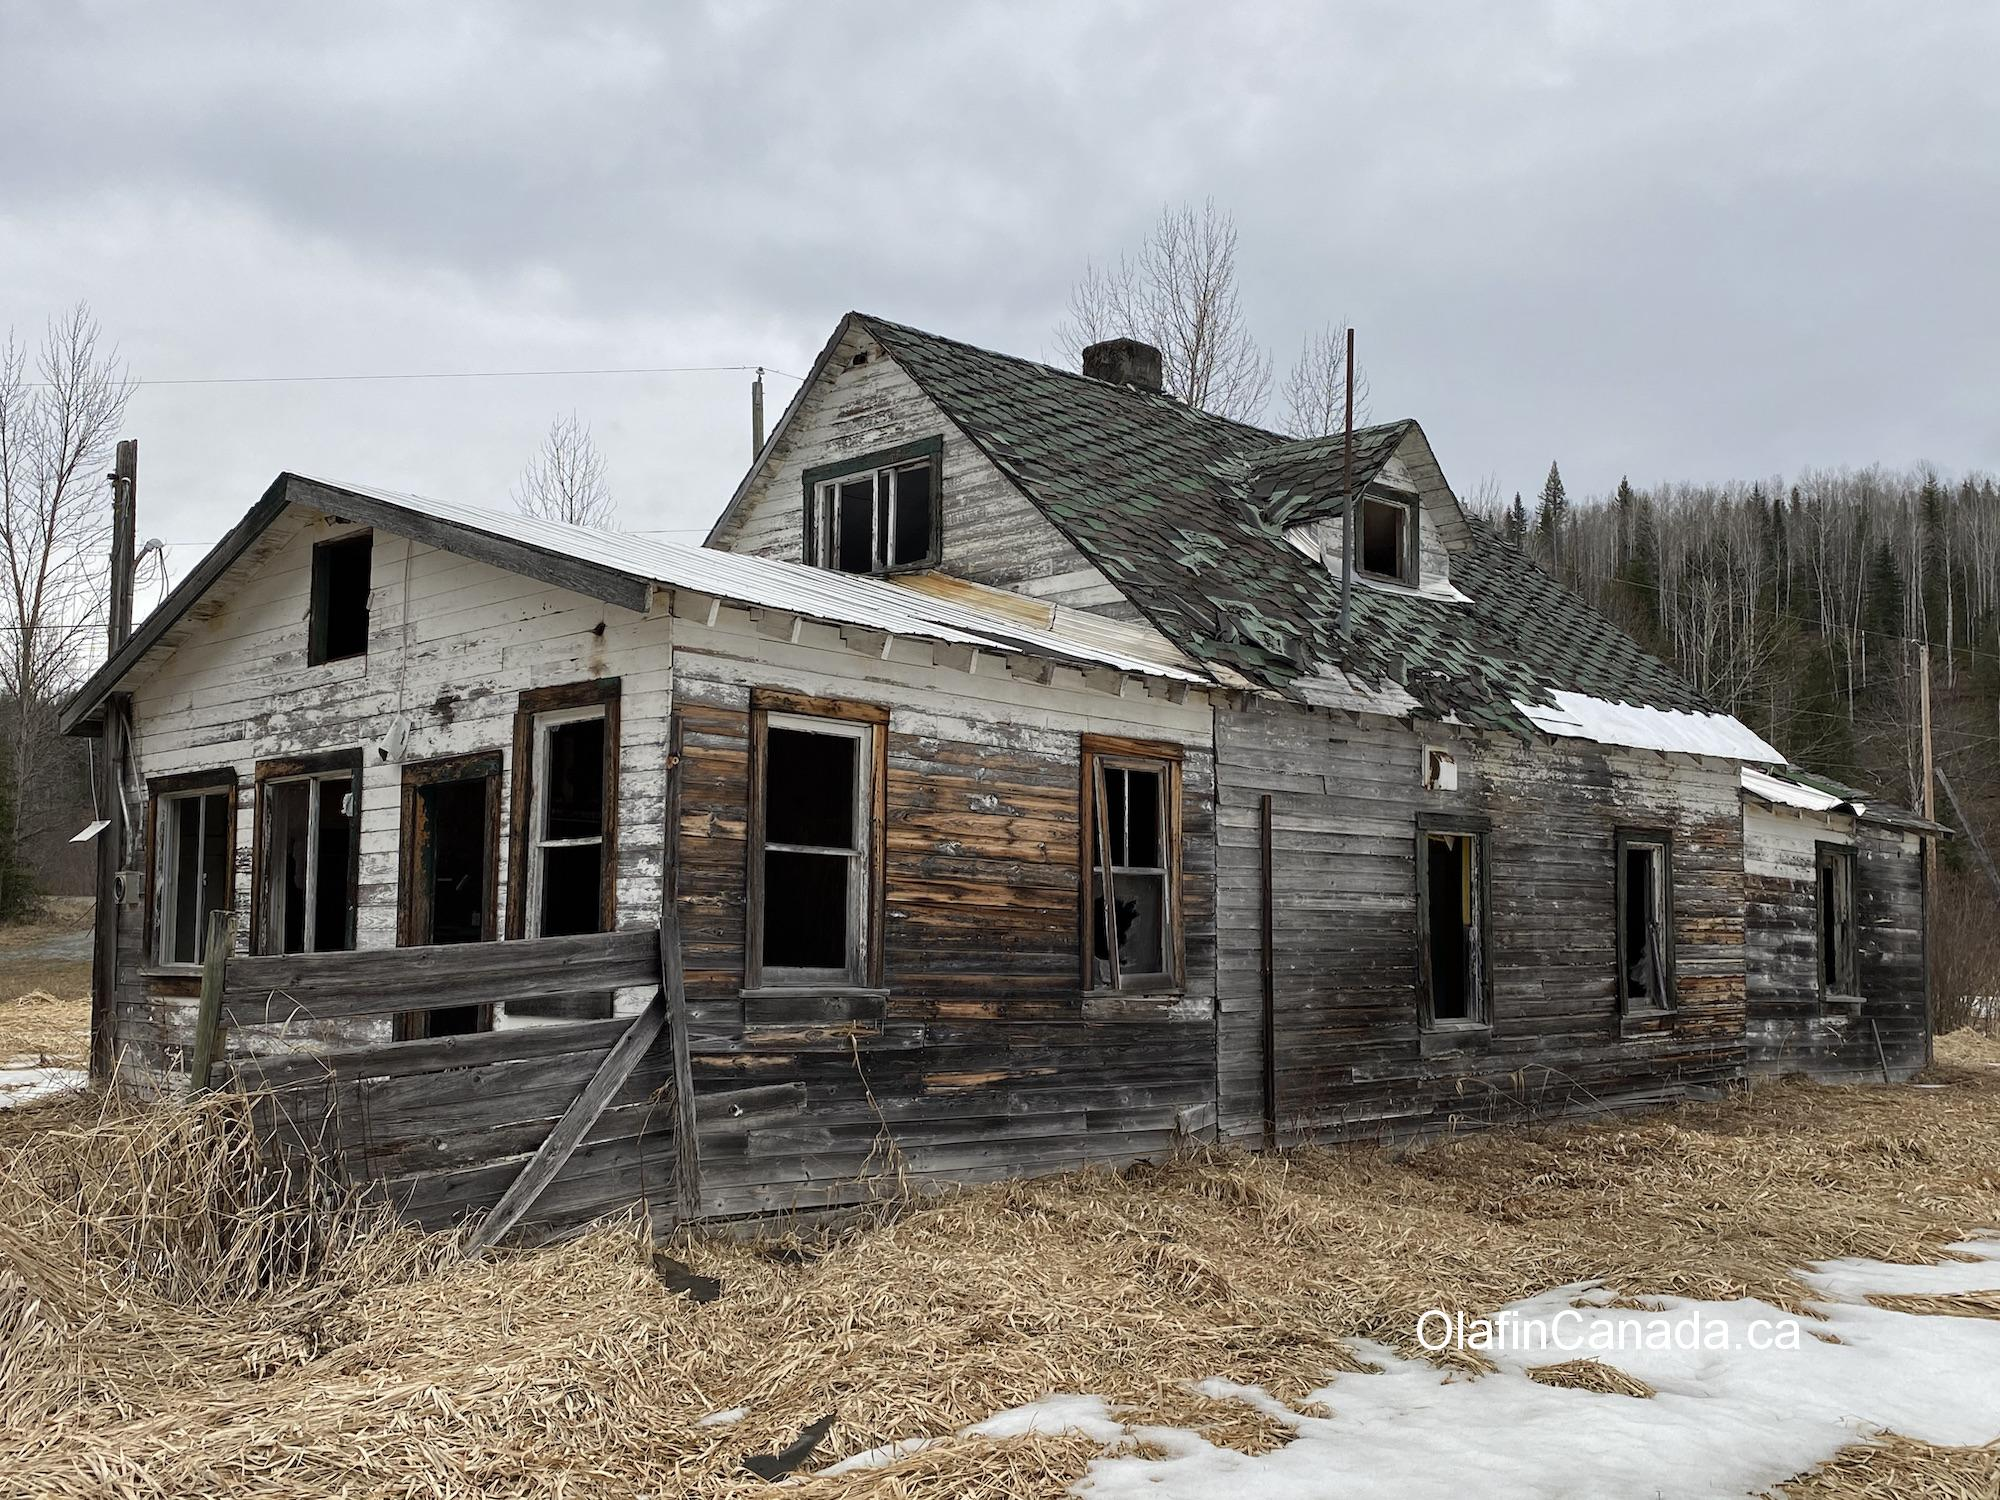 Abandoned home of the Helset family on the Clearwater Valley Road in south Wells Gray Park #olafincanada #britishcolumbia #discoverbc #abandonedbc #clearwater